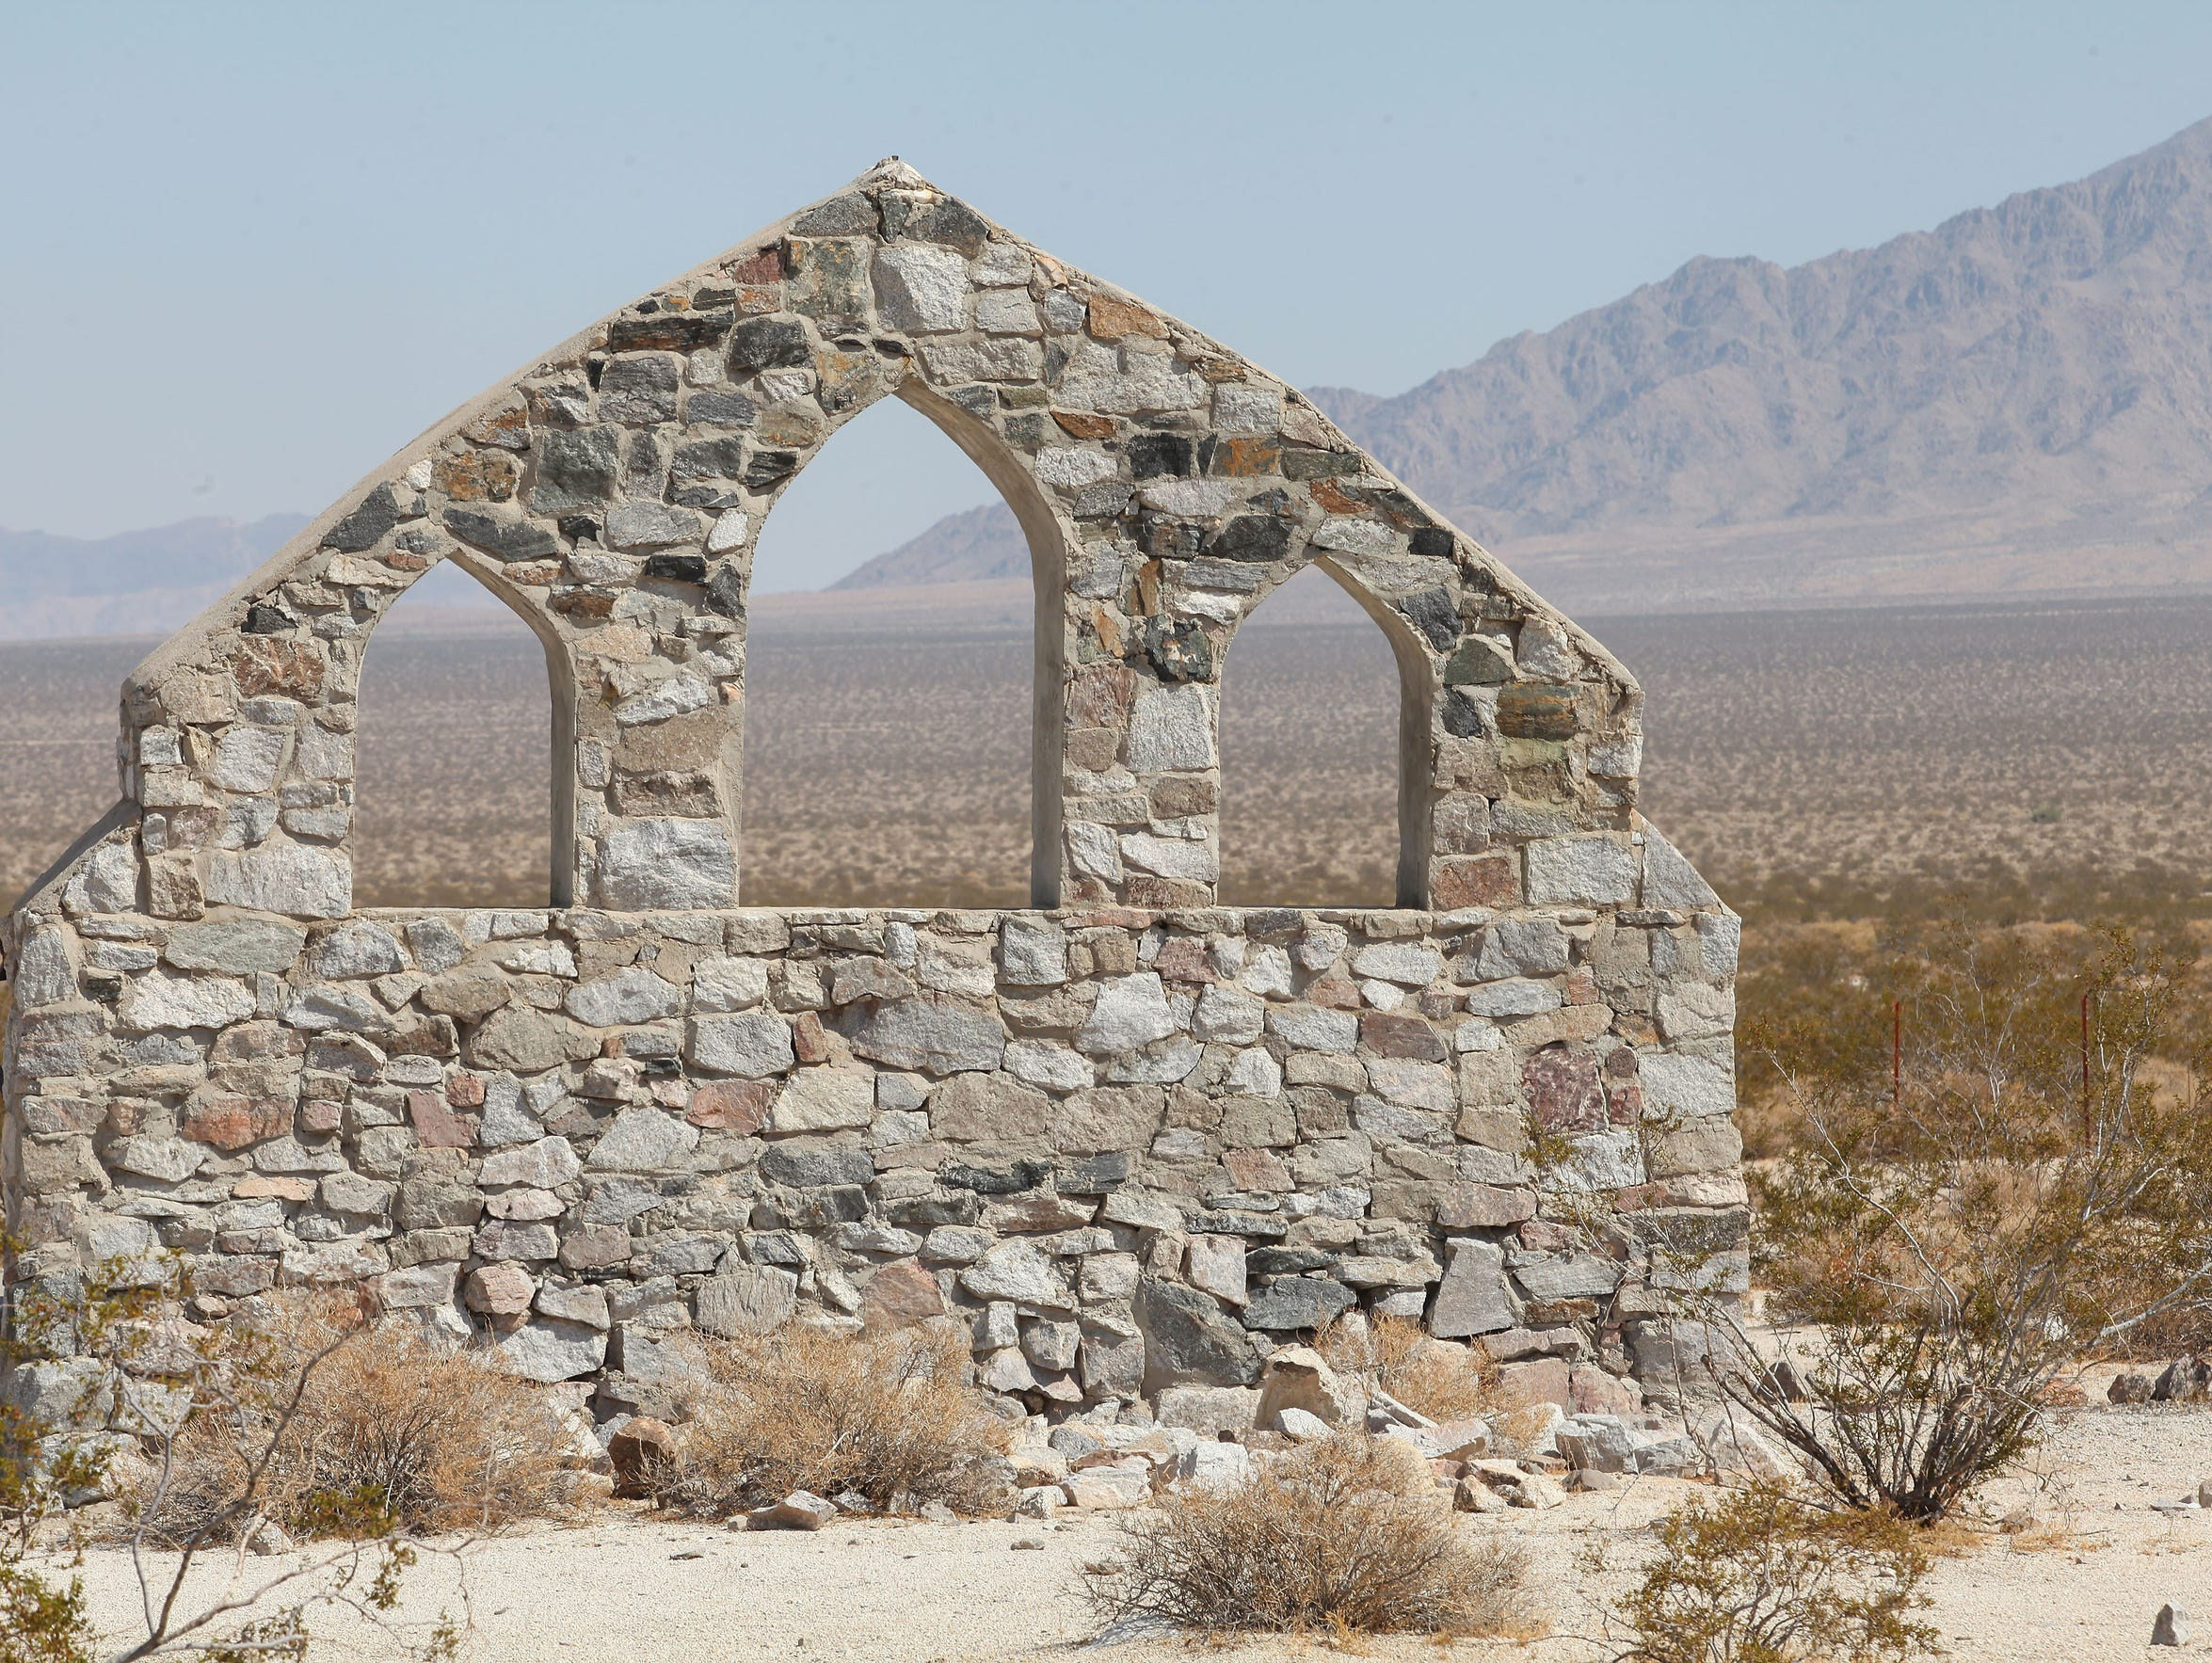 The stone wall of a chapel stands among the remnants